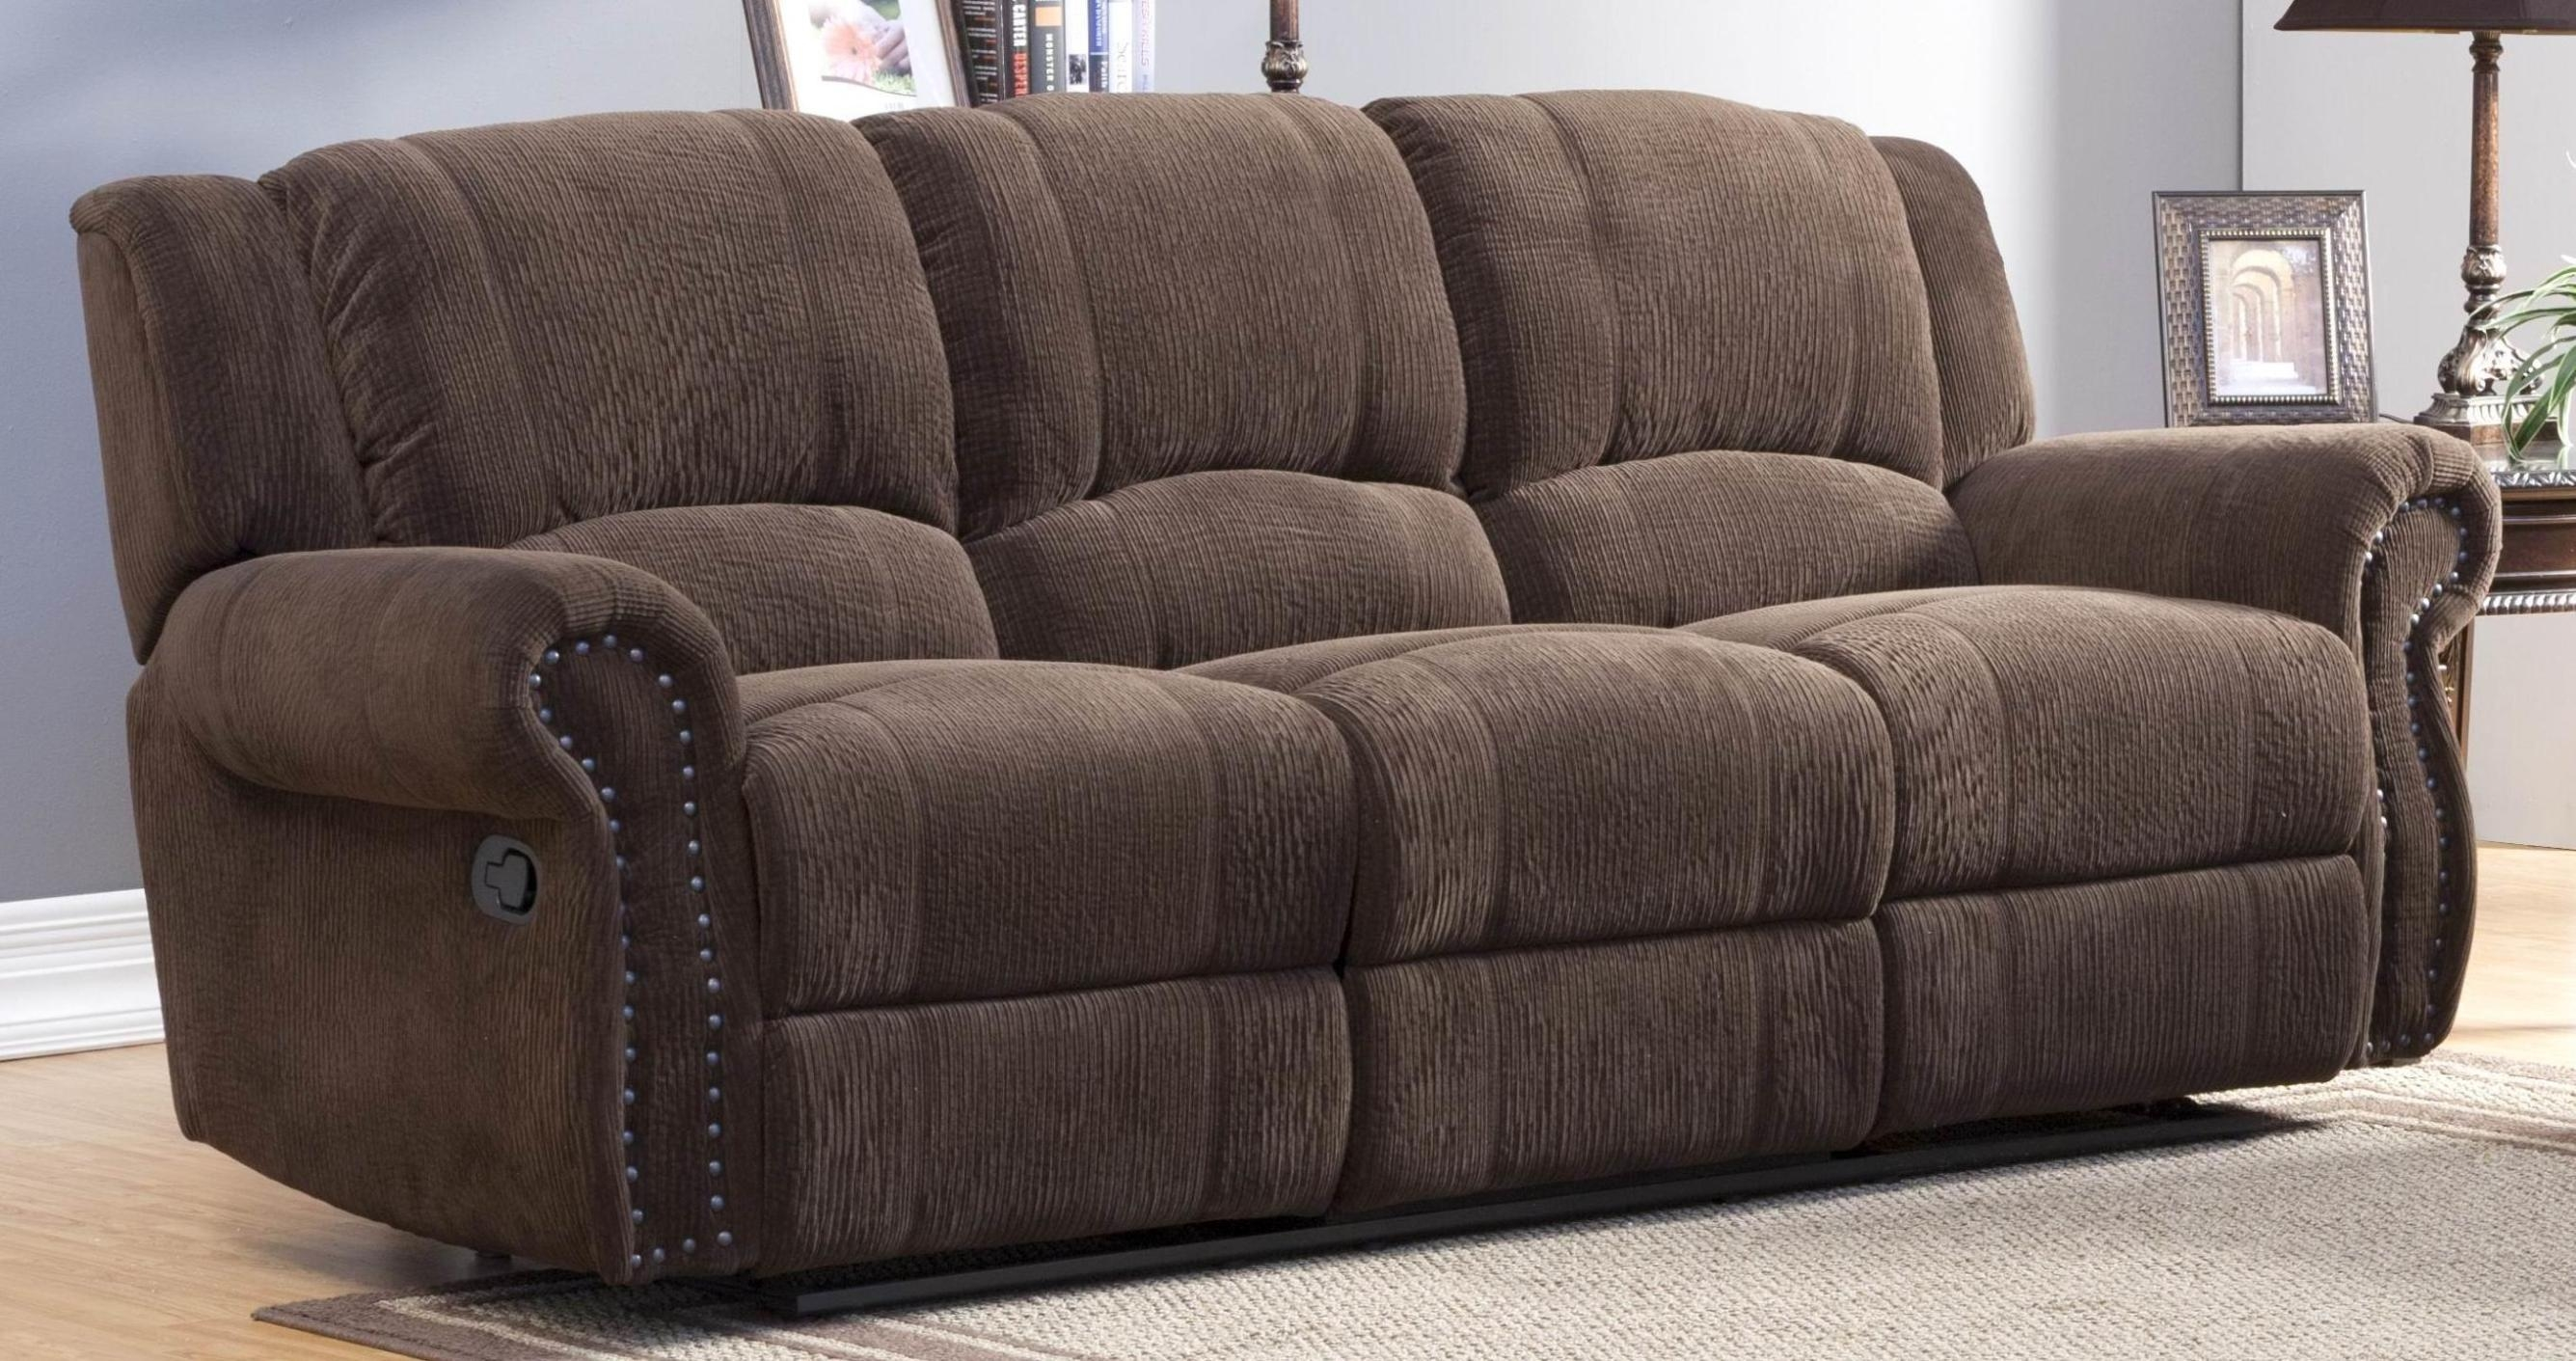 dual reclining sofa slipcover l shaped covers online india slipcovers for recliners